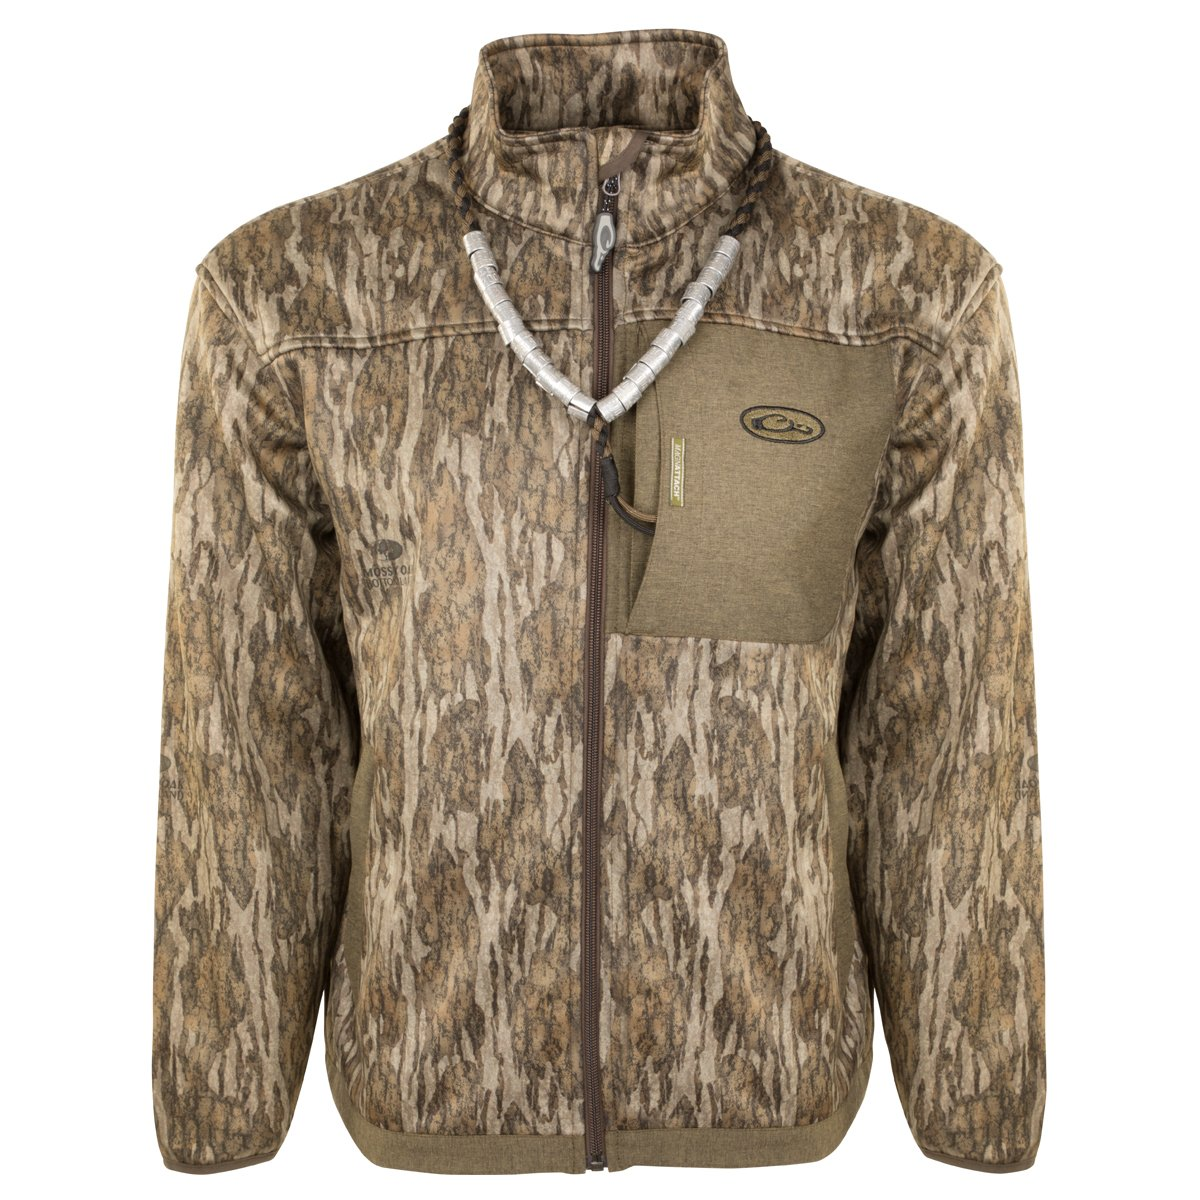 Drake MST Endurance Hybrid Liner Full Zip (Bottomland, Medium)